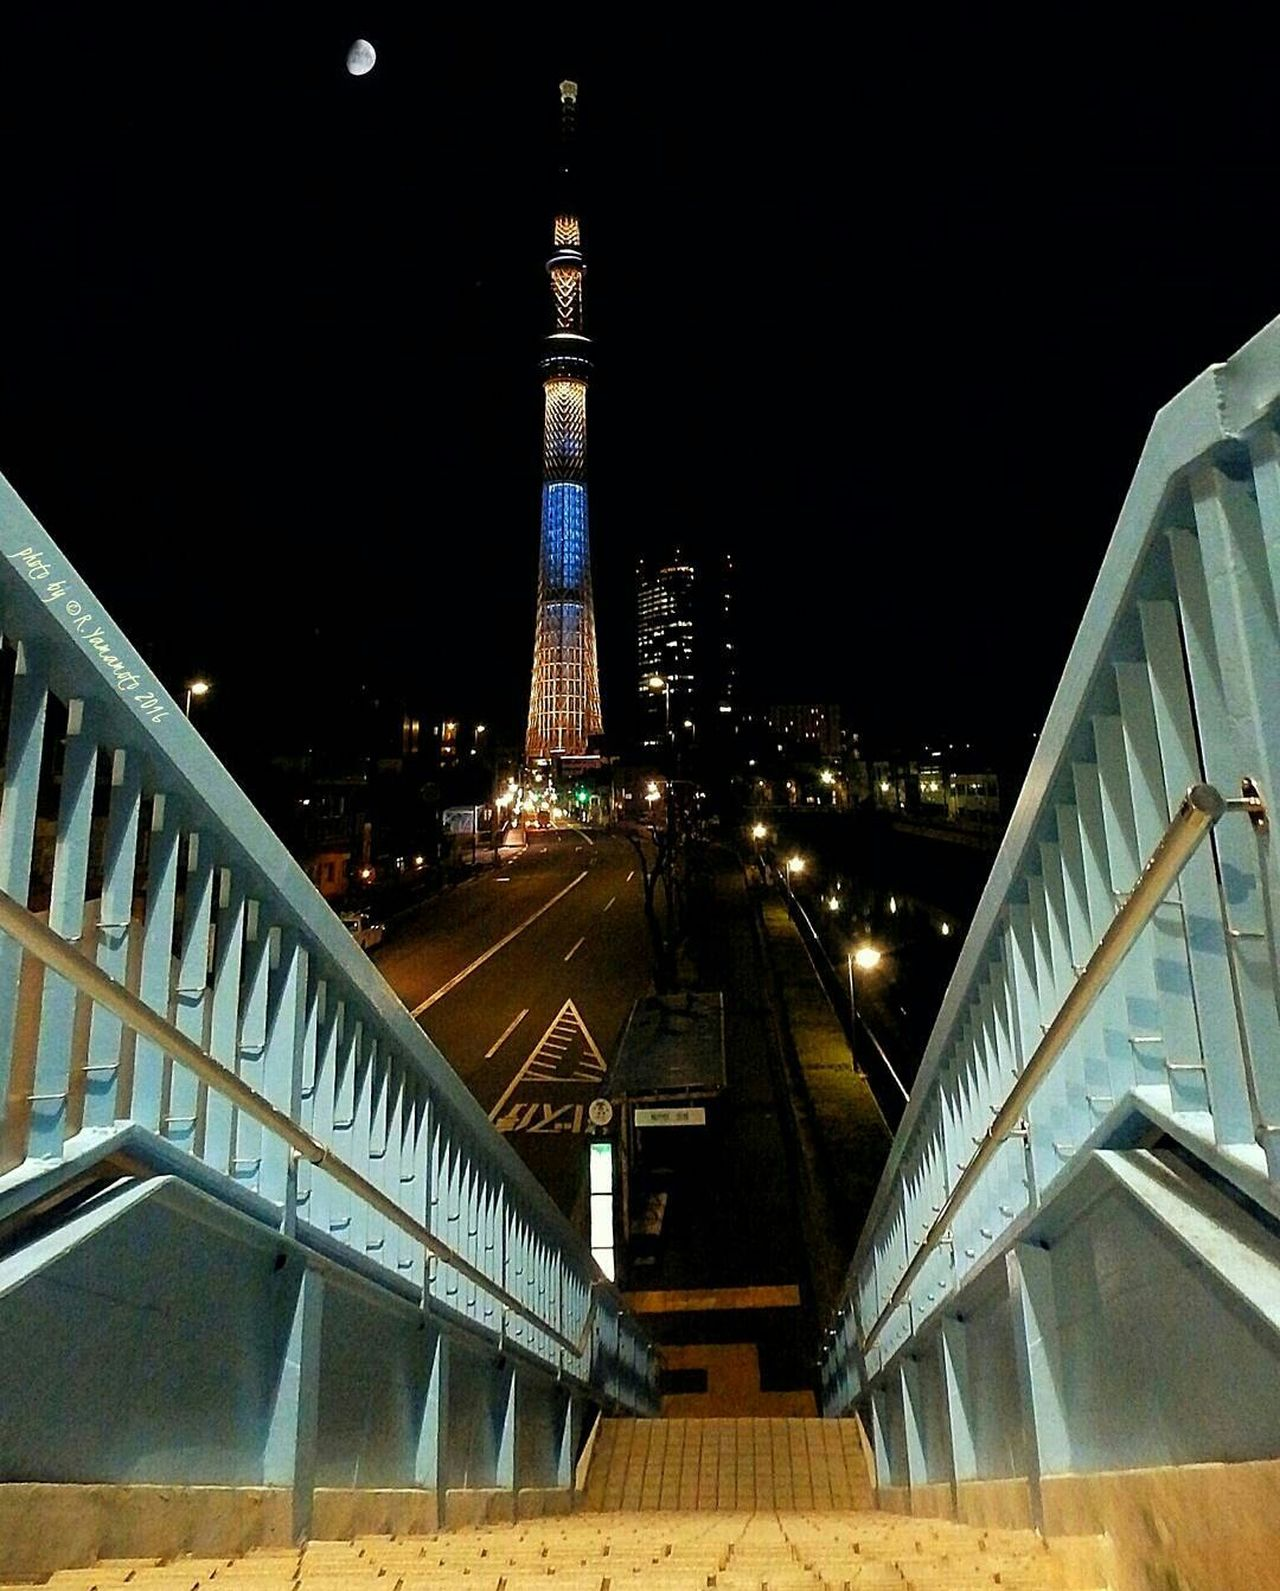 This shot was taken almost a year ago.. 'Tokyo Sky Tree' tower and the waxing gibbous Moon🌛🌃🗼... on the way home from work. | やっと週末♪寒さに負けずに、素敵な週末をお過ごしください(*´∀`)♪ A Happy Weekend Y'all! 東京スカイツリータワーとお月様◯ |Location / 撮影地: 東京都墨田区押上 ・Oshiage, Sumida-ku, Tokyo | スカイツリー 東京スカイツリー SkyTreeTower Tokyoskytree Architecture Night Illuminated Tokyo Night Tokyo Street Photography Overpass View Gibbous Moon Moon Shots Eyeemgallery EyeEm Best Shots - Architecture EyeEmNewHere From My Point Of View Cities At Night Urbanphotography Urban Exploration 夜景 Full Frame Adapted To The City From My Perspective